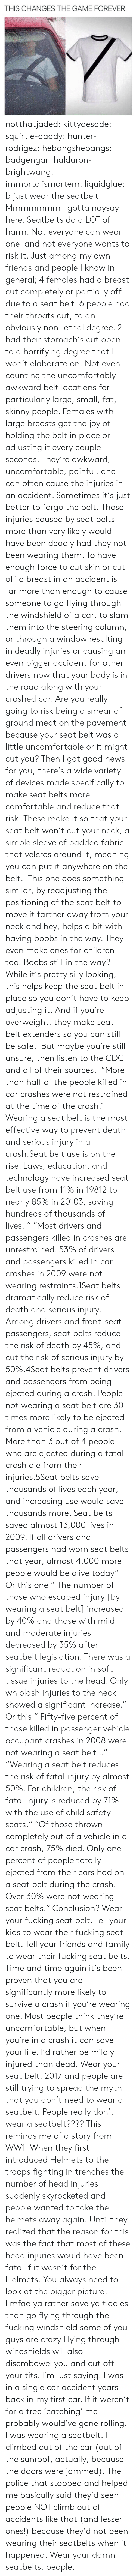 "Alive, Cars, and Children: THIS CHANGES THE GAME FOREVER notthatjaded: kittydesade:  squirtle-daddy:  hunter-rodrigez:  hebangshebangs:  badgengar:  halduron-brightwang:  immortalismortem:  liquidglue:   b just wear the seatbelt   Mmmmmmm I gotta naysay here. Seatbelts do a LOT of harm. Not everyone can wear one  and not everyone wants to risk it. Just among my own friends and people I know in general; 4 females had a breast cut completely or partially off due to a seat belt. 6 people had their throats cut, to an obviously non-lethal degree. 2 had their stomach's cut open to a horrifying degree that I won't elaborate on. Not even counting the uncomfortably awkward belt locations for particularly large, small, fat, skinny people. Females with large breasts get the joy of holding the belt in place or adjusting it every couple seconds. They're awkward, uncomfortable, painful, and can often cause the injuries in an accident. Sometimes it's just better to forgo the belt.  Those injuries caused by seat belts more than very likely would have been deadly had they not been wearing them. To have enough force to cut skin or cut off a breast in an accident is far more than enough to cause someone to go flying through the windshield of a car, to slam them into the steering column, or through a window resulting in deadly injuries or causing an even bigger accident for other drivers now that your body is in the road along with your crashed car. Are you really going to risk being a smear of ground meat on the pavement because your seat belt was a little uncomfortable or it might cut you? Then I got good news for you, there's a wide variety of devices made specifically to make seat belts more comfortable and reduce that risk. These make it so that your seat belt won't cut your neck, a simple sleeve of padded fabric that velcros around it, meaning you can put it anywhere on the belt.  This one does something similar, by readjusting the positioning of the seat belt to move it farther away from your neck and hey, helps a bit with having boobs in the way. They even make ones for children too. Boobs still in the way? While it's pretty silly looking, this helps keep the seat belt in place so you don't have to keep adjusting it. And if you're overweight, they make seat belt extenders so you can still be safe.  But maybe you're still unsure, then listen to the CDC and all of their sources.  ""More than half of the people killed in car crashes were not restrained at the time of the crash.1 Wearing a seat belt is the most effective way to prevent death and serious injury in a crash.Seat belt use is on the rise. Laws, education, and technology have increased seat belt use from 11% in 19812 to nearly 85% in 20103, saving hundreds of thousands of lives. "" ""Most drivers and passengers killed in crashes are unrestrained. 53% of drivers and passengers killed in car crashes in 2009 were not wearing restraints.1Seat belts dramatically reduce risk of death and serious injury. Among drivers and front-seat passengers, seat belts reduce the risk of death by 45%, and cut the risk of serious injury by 50%.4Seat belts prevent drivers and passengers from being ejected during a crash. People not wearing a seat belt are 30 times more likely to be ejected from a vehicle during a crash. More than 3 out of 4 people who are ejected during a fatal crash die from their injuries.5Seat belts save thousands of lives each year, and increasing use would save thousands more. Seat belts saved almost 13,000 lives in 2009. If all drivers and passengers had worn seat belts that year, almost 4,000 more people would be alive today"" Or this one ""   The number of those who escaped injury [by wearing a seat belt] increased by 40% and those with mild and moderate injuries decreased by 35% after seatbelt legislation. There was a significant reduction in soft tissue injuries to the head. Only whiplash injuries to the neck showed a significant increase."" Or this ""  Fifty-five percent of those killed in passenger vehicle occupant crashes in 2008 were not wearing a seat belt…"" ""Wearing a seat belt reduces the risk of fatal injury by almost 50%. For children, the risk of fatal injury is reduced by 71% with the use of child safety seats."" ""Of those thrown completely out of a vehicle in a car crash, 75% died. Only one percent of people totally ejected from their cars had on a seat belt during the crash. Over 30% were not wearing seat belts."" Conclusion? Wear your fucking seat belt. Tell your kids to wear their fucking seat belt. Tell your friends and family to wear their fucking seat belts. Time and time again it's been proven that you are significantly more likely to survive a crash if you're wearing one. Most people think they're uncomfortable, but when you're in a crash it can save your life. I'd rather be mildly injured than dead. Wear your seat belt.  2017 and people are still trying to spread the myth that you don't need to wear a seatbelt.   People really don't wear a seatbelt????  This reminds me of a story from WW1  When they first introduced Helmets to the troops fighting in trenches the number of head injuries suddenly skyrocketed and people wanted to take the helmets away again. Until they realized that the reason for this was the fact that most of these head injuries would have been fatal if it wasn't for the Helmets. You always need to look at the bigger picture.     Lmfao ya rather save ya tiddies than go flying through the fucking windshield some of you guys are crazy   Flying through windshields will also disembowel you and cut off your tits. I'm just saying.  I was in a single car accident years back in my first car. If it weren't for a tree 'catching' me I probably would've gone rolling. I was wearing a seatbelt. I climbed out of the car (out of the sunroof, actually, because the doors were jammed). The police that stopped and helped me basically said they'd seen people NOT climb out of accidents like that (and lesser ones!) because they'd not been wearing their seatbelts when it happened. Wear your damn seatbelts, people."